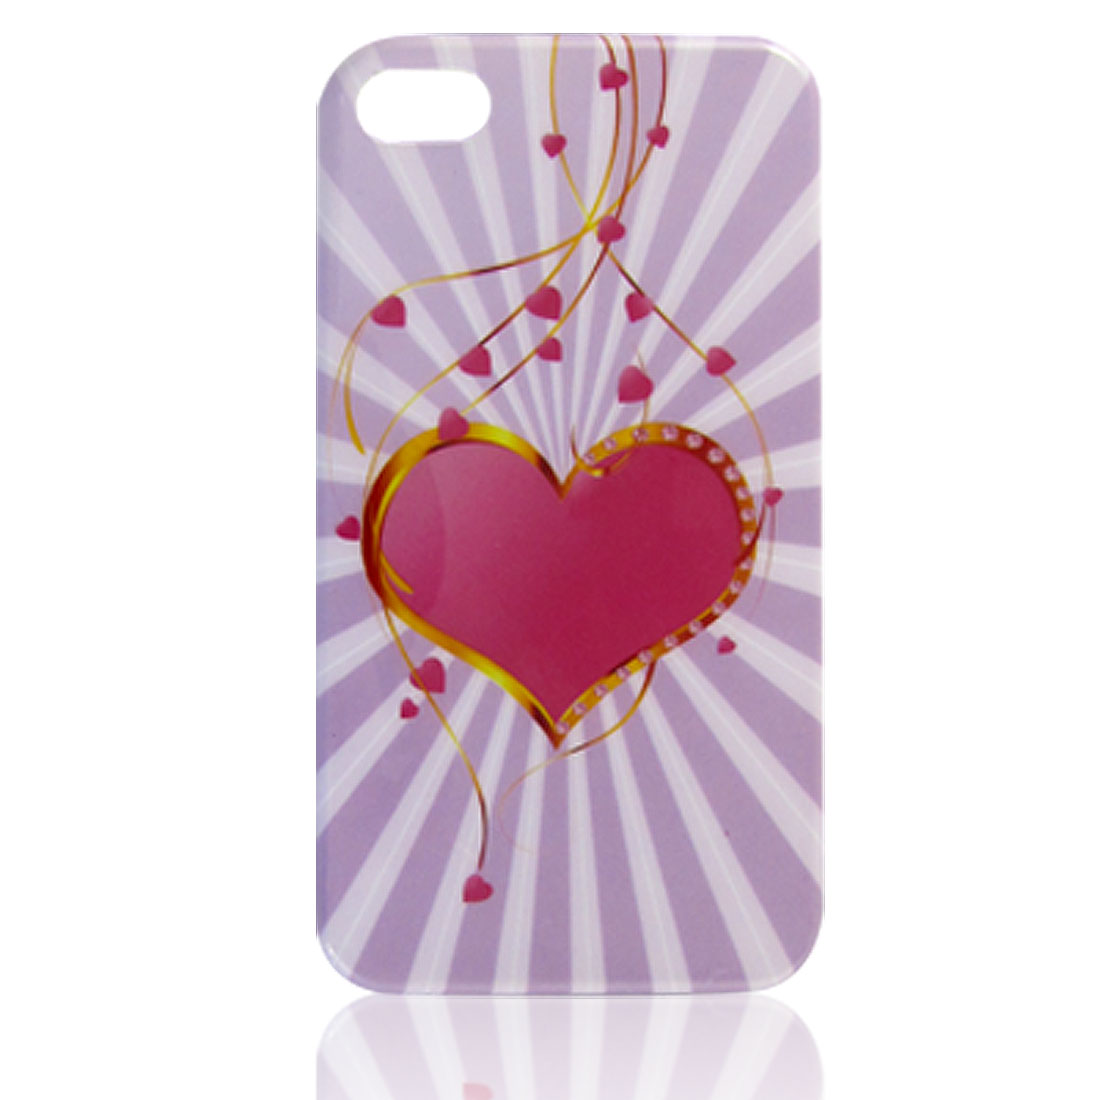 Fuchsia Heart Lilac Color Rays Pattern IMD Hard Plastic Back Case for iPhone 4 4G 4S